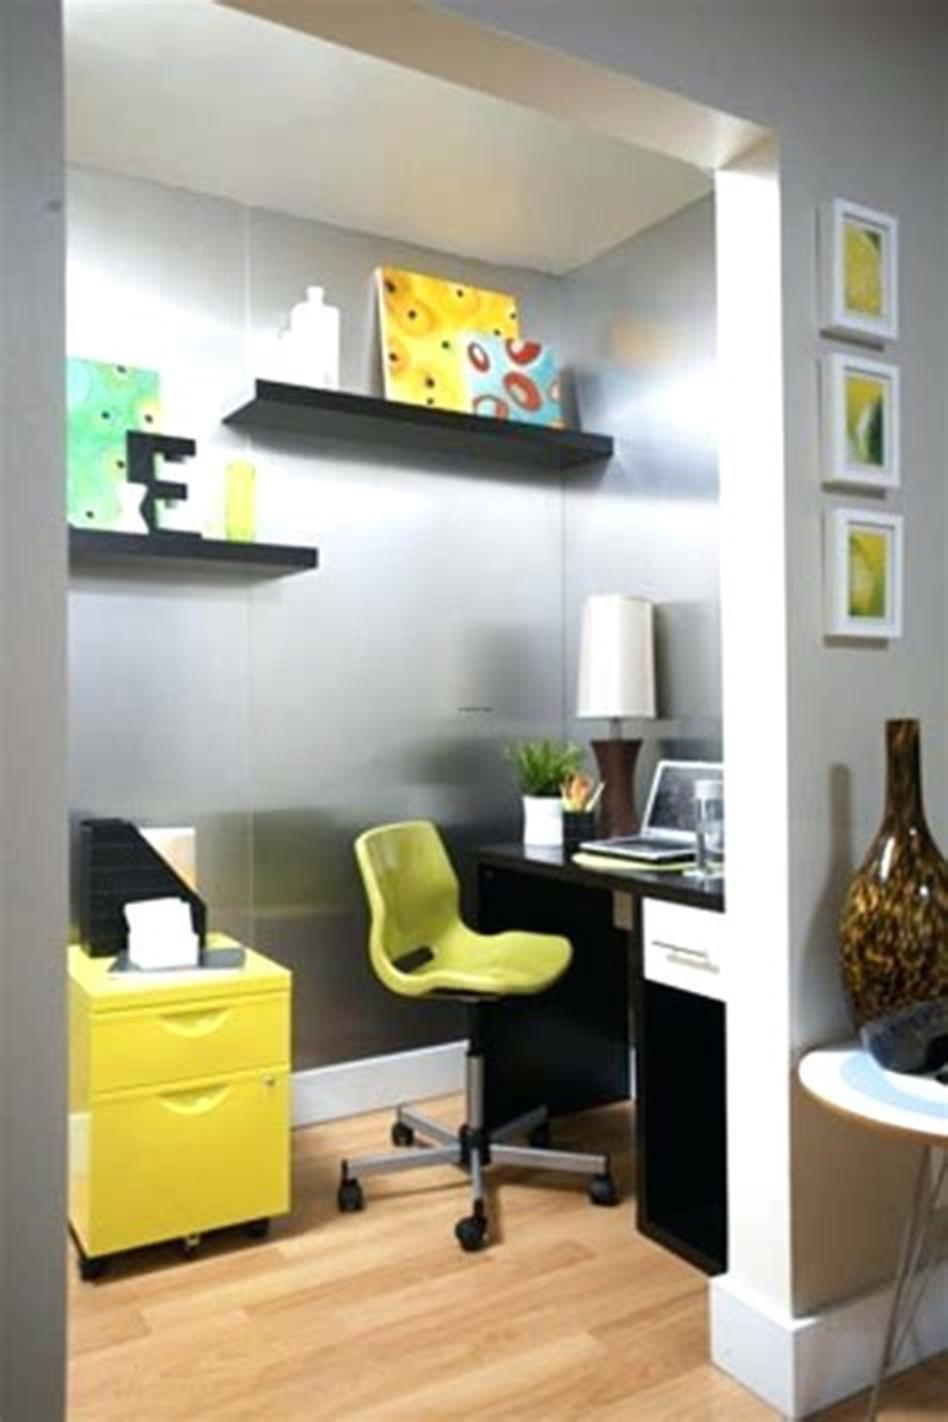 50 Best Small Space Office Decorating Ideas On a Budget 2019 58